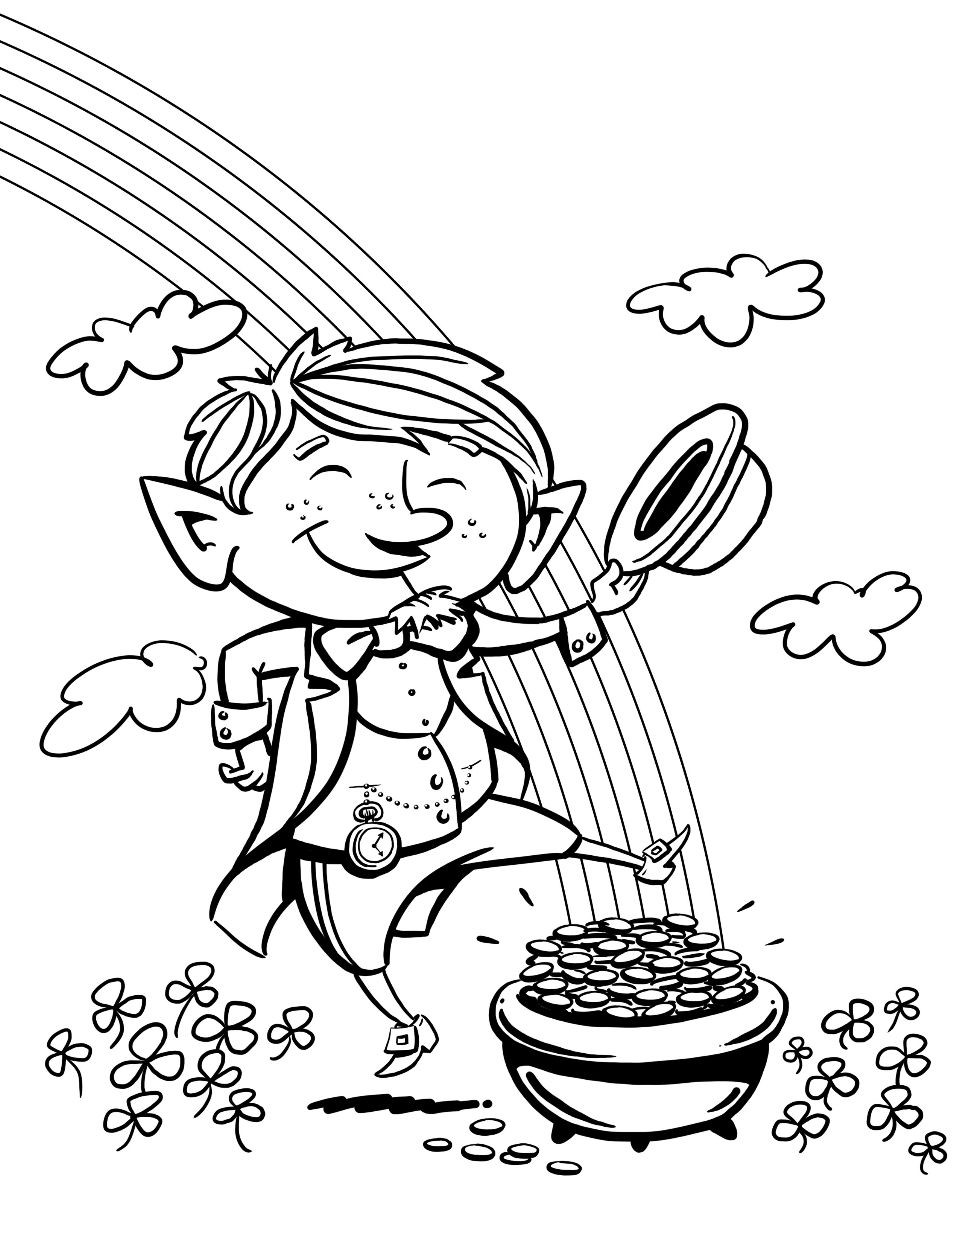 960x1243 Value Irish Coloring Pages Ireland Rugby Team Irfu Hellokids Com